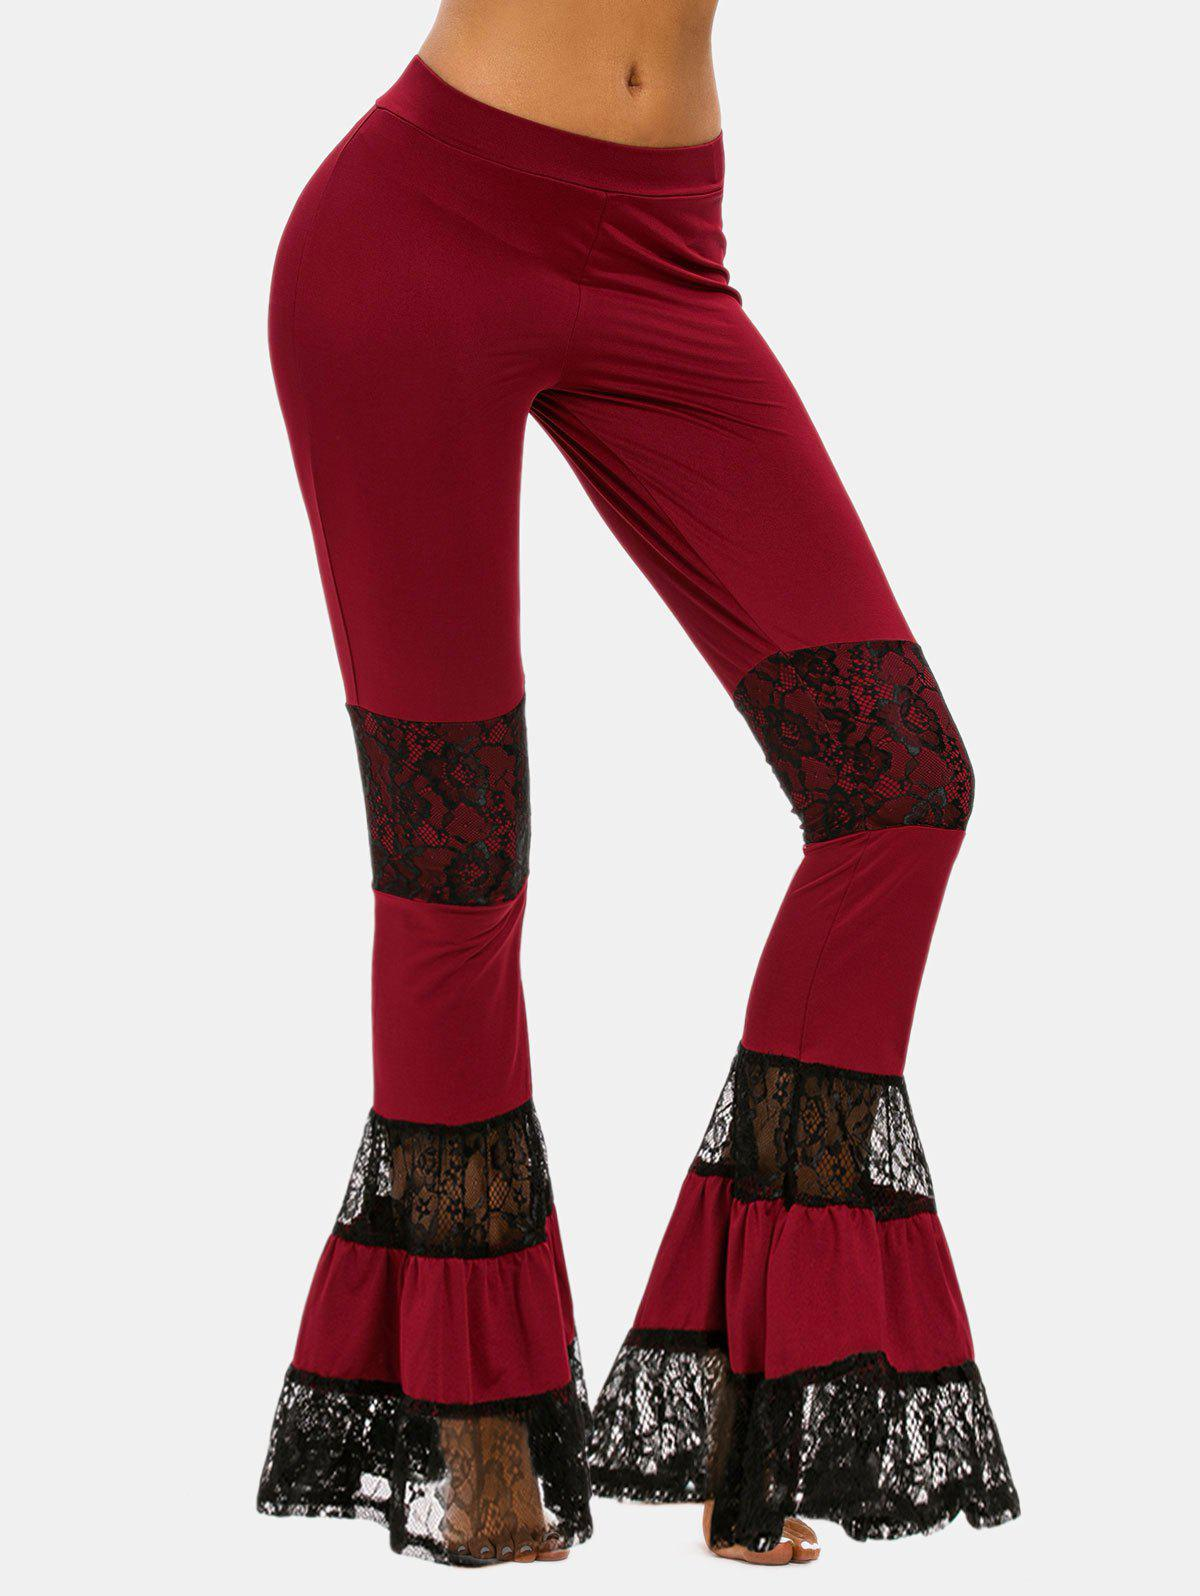 Lace Panel Flare Bottom Pants - DEEP RED XXL